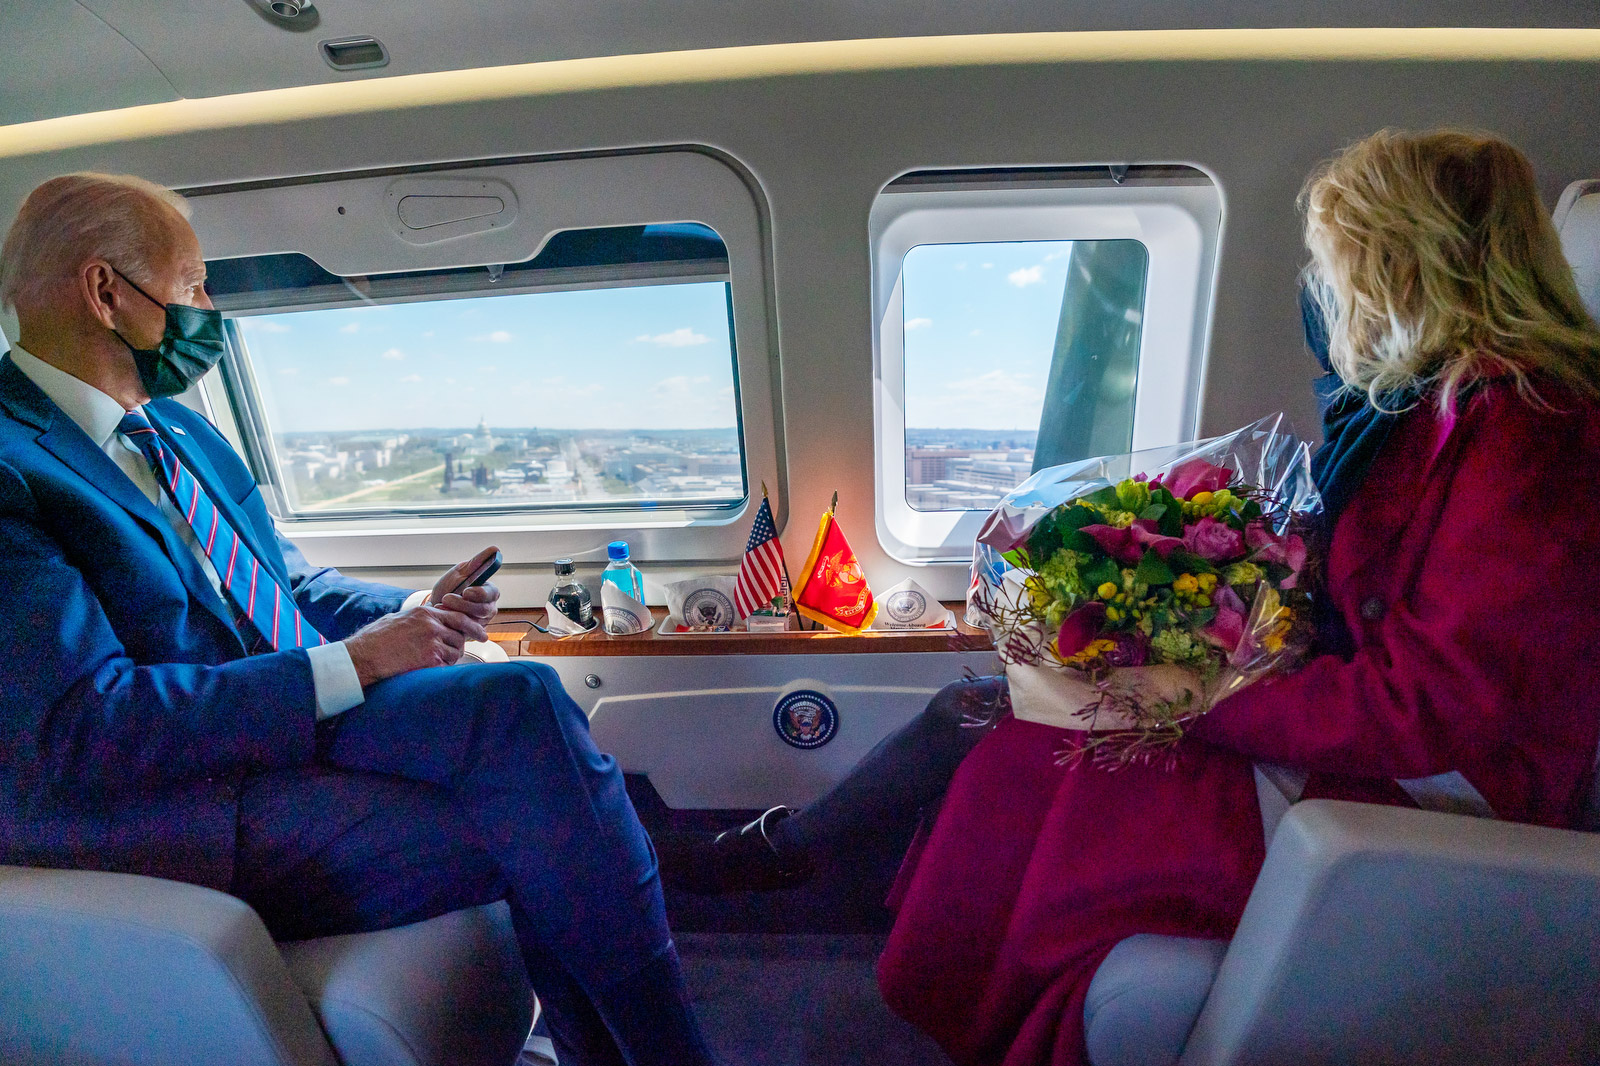 President Joe Biden and First Lady Jill Biden look out the windows of Marine One at they fly over the National Mall in Washington, D.C. on Friday, April 2, 2021, en route to Camp David, near Thurmont, Maryland